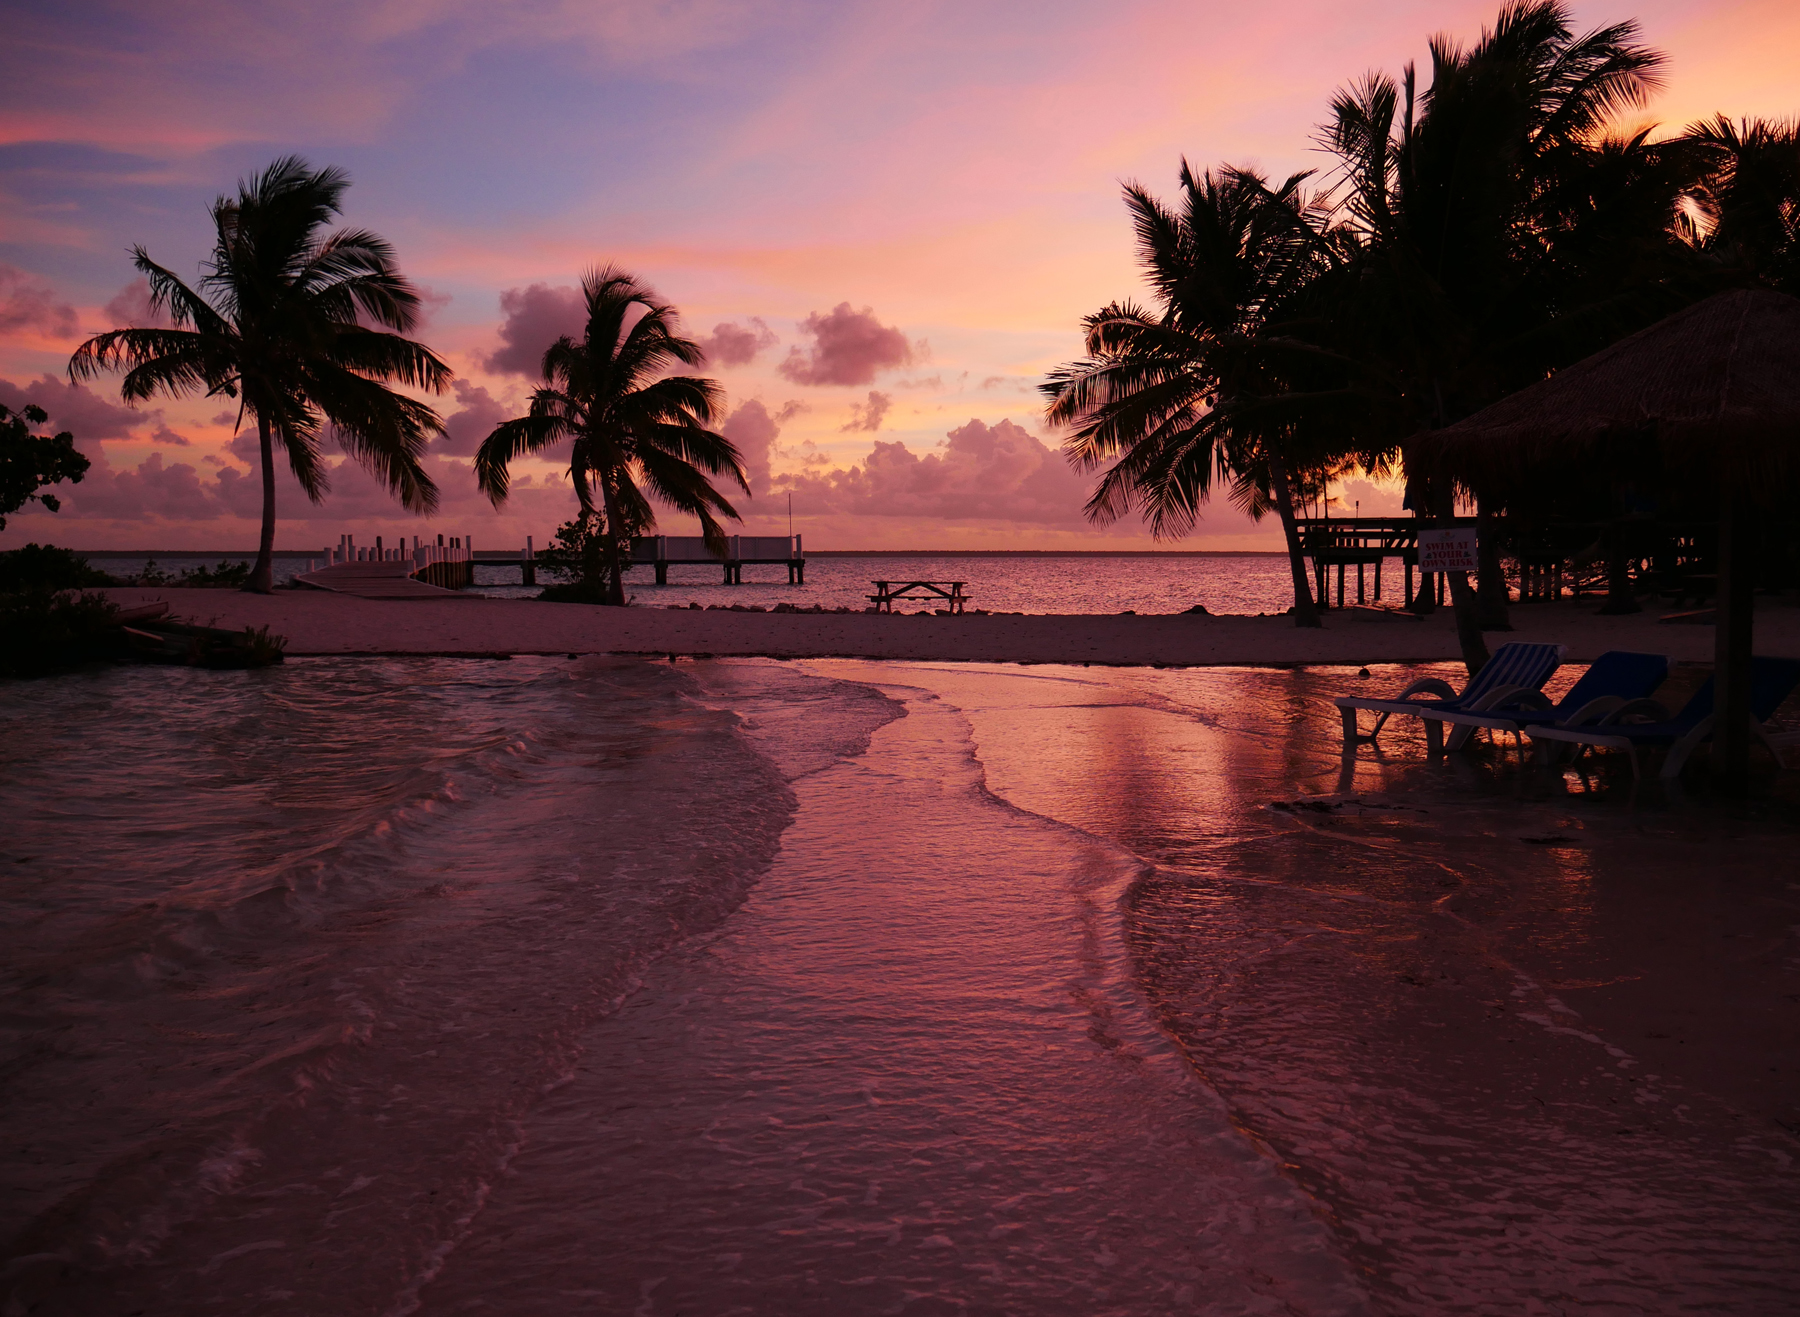 Sunset at Bluff House Beach - Green Turtle Cay, Abaco, Bahamas.